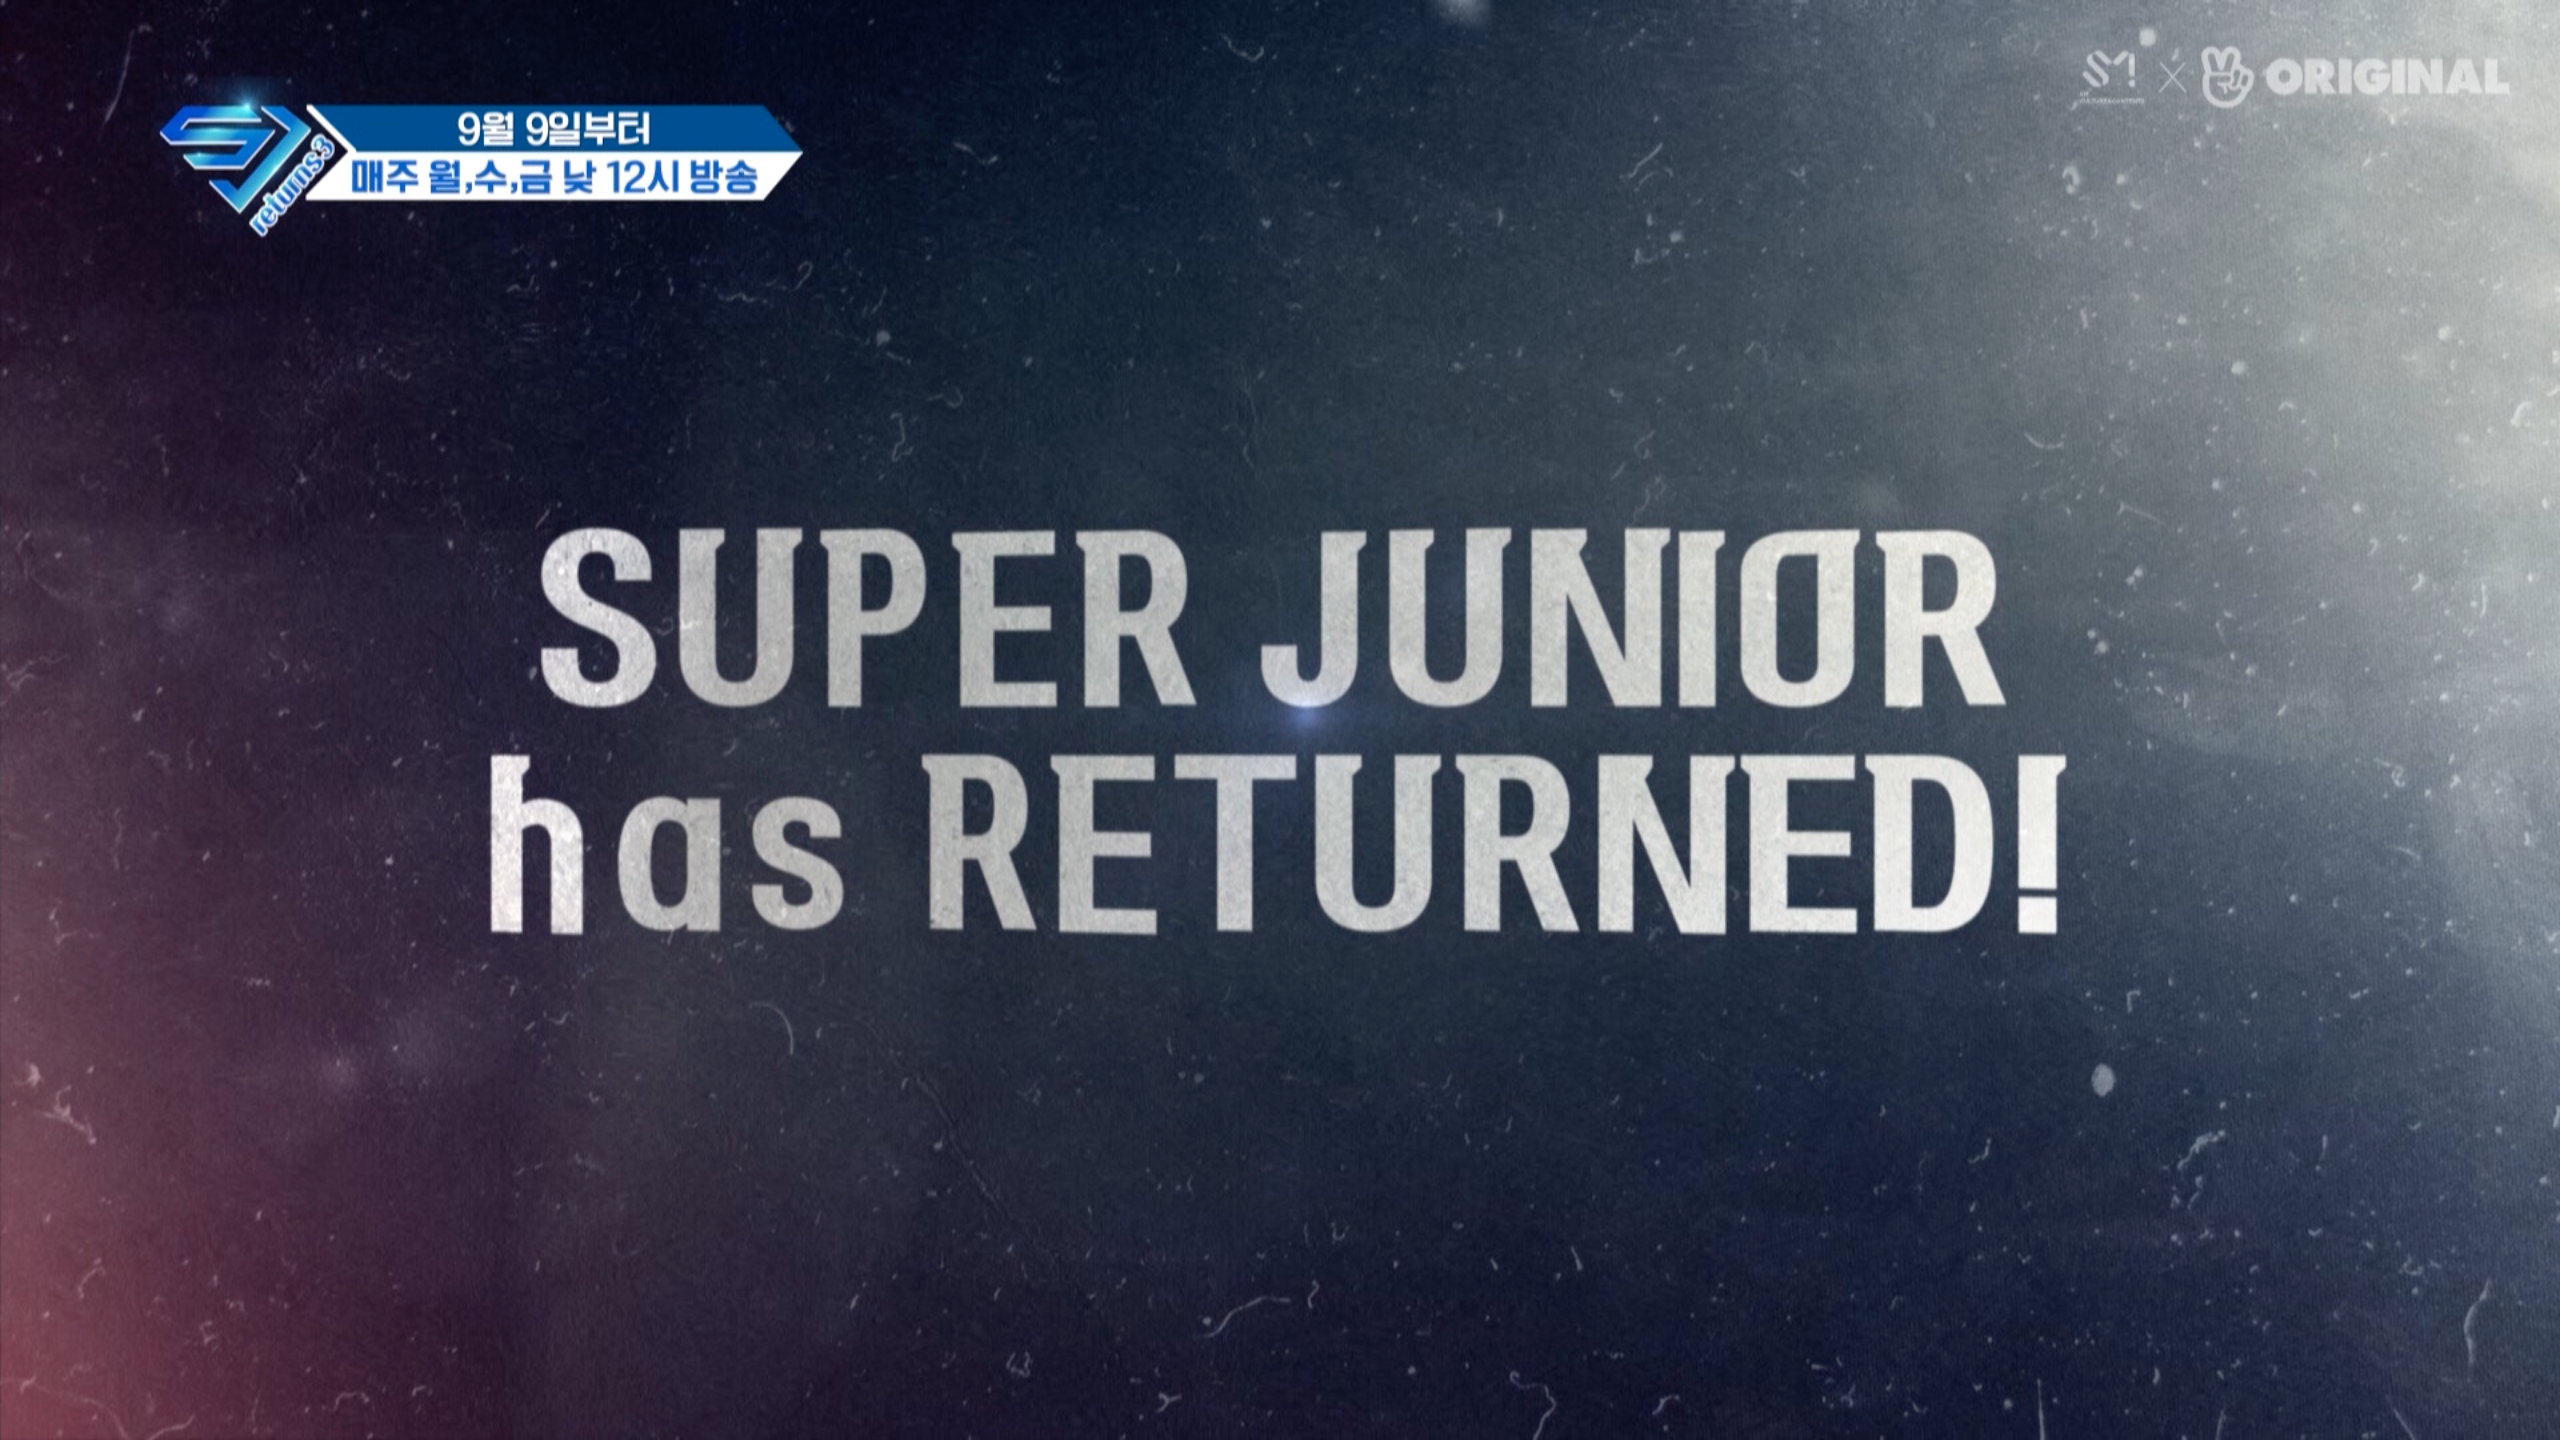 티저1. SUPER JUNIOR has RETURNED!